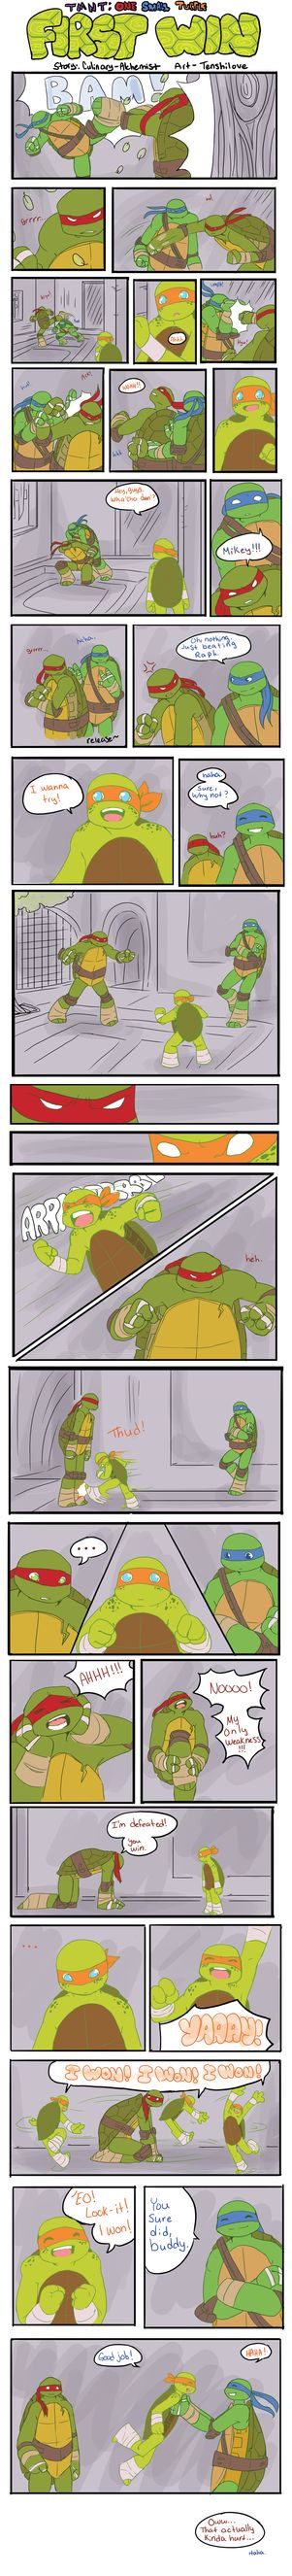 TMNT: One Small Turtle : First Win by Tenshilove on deviantART